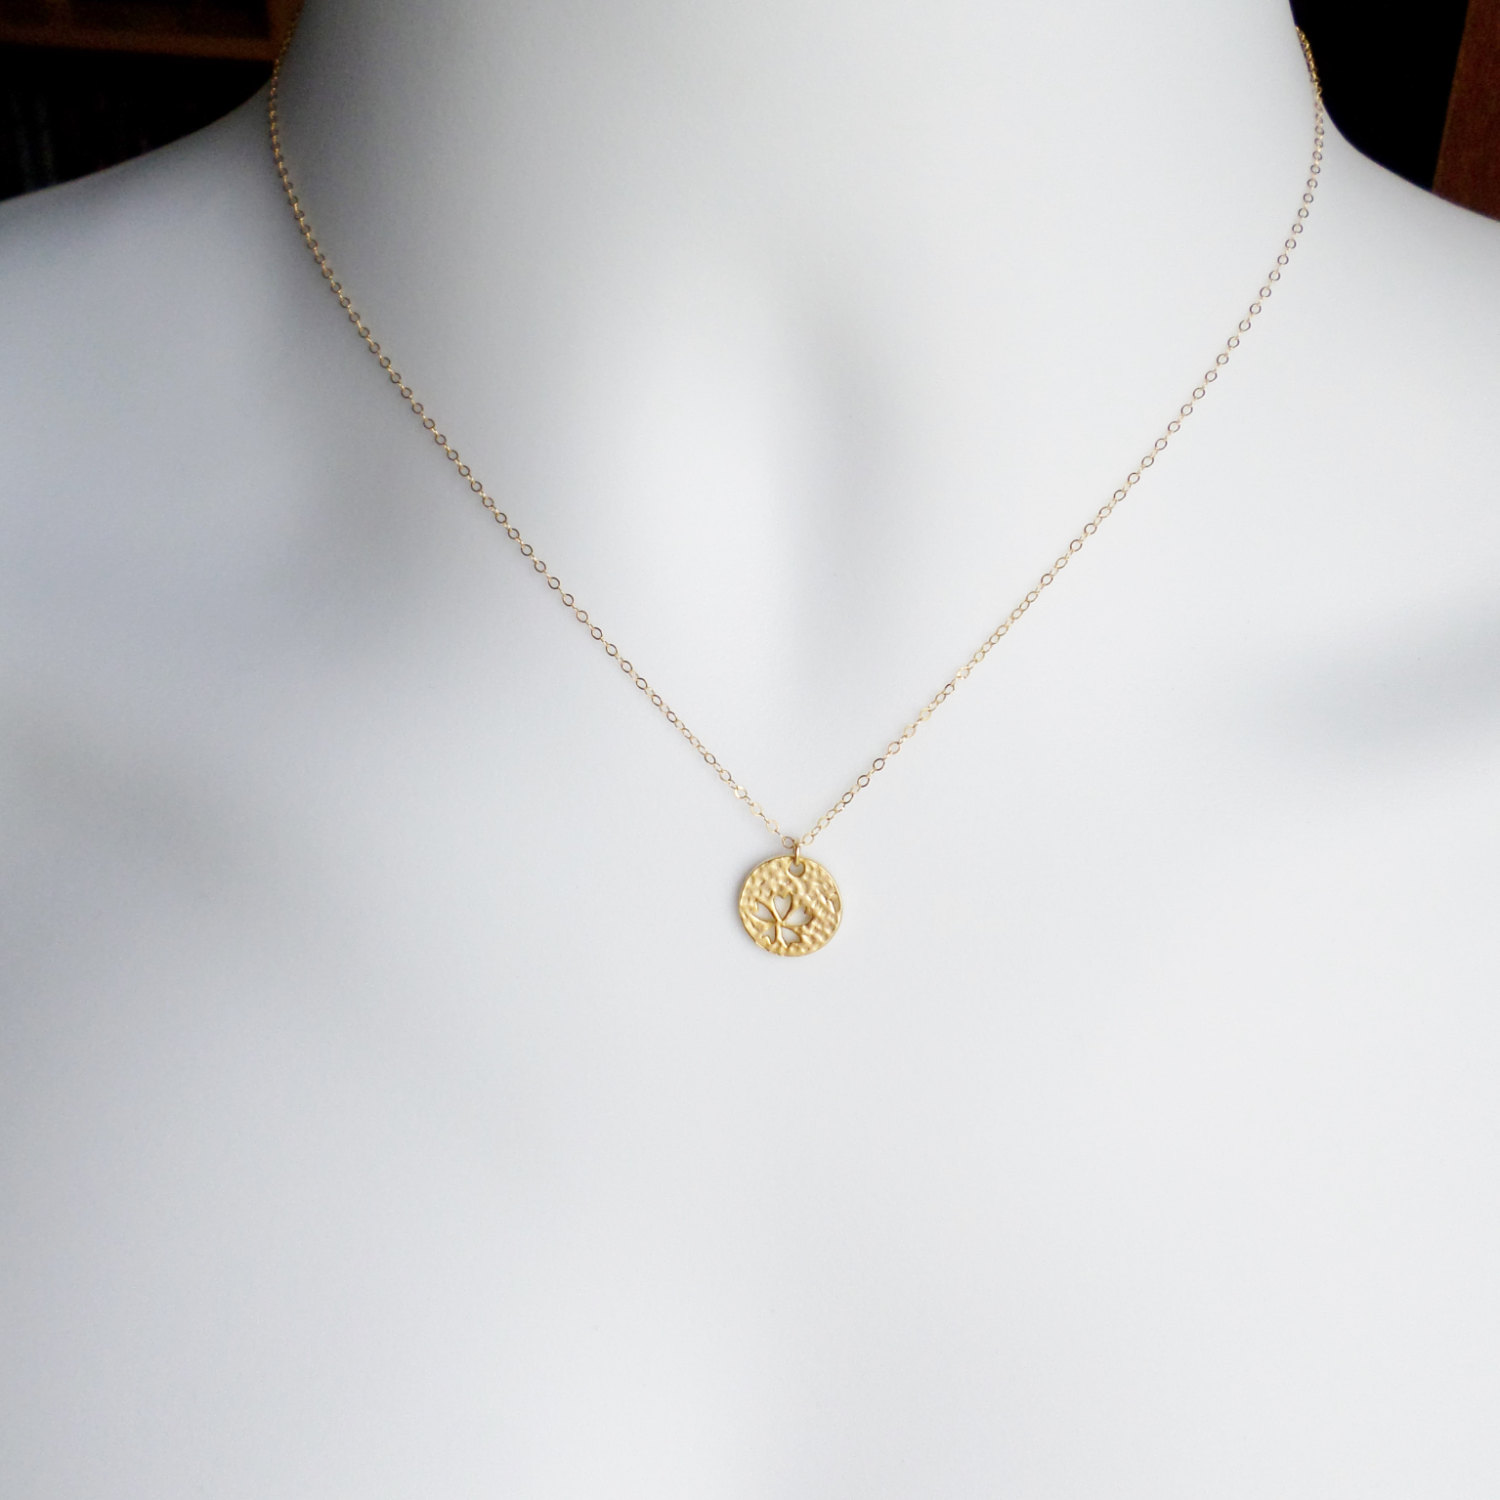 delicate chainminimalist gold rhodium and bar necklace charm jewelry product il arc dipped hammered necklacearc modern necklsce set fullxfull